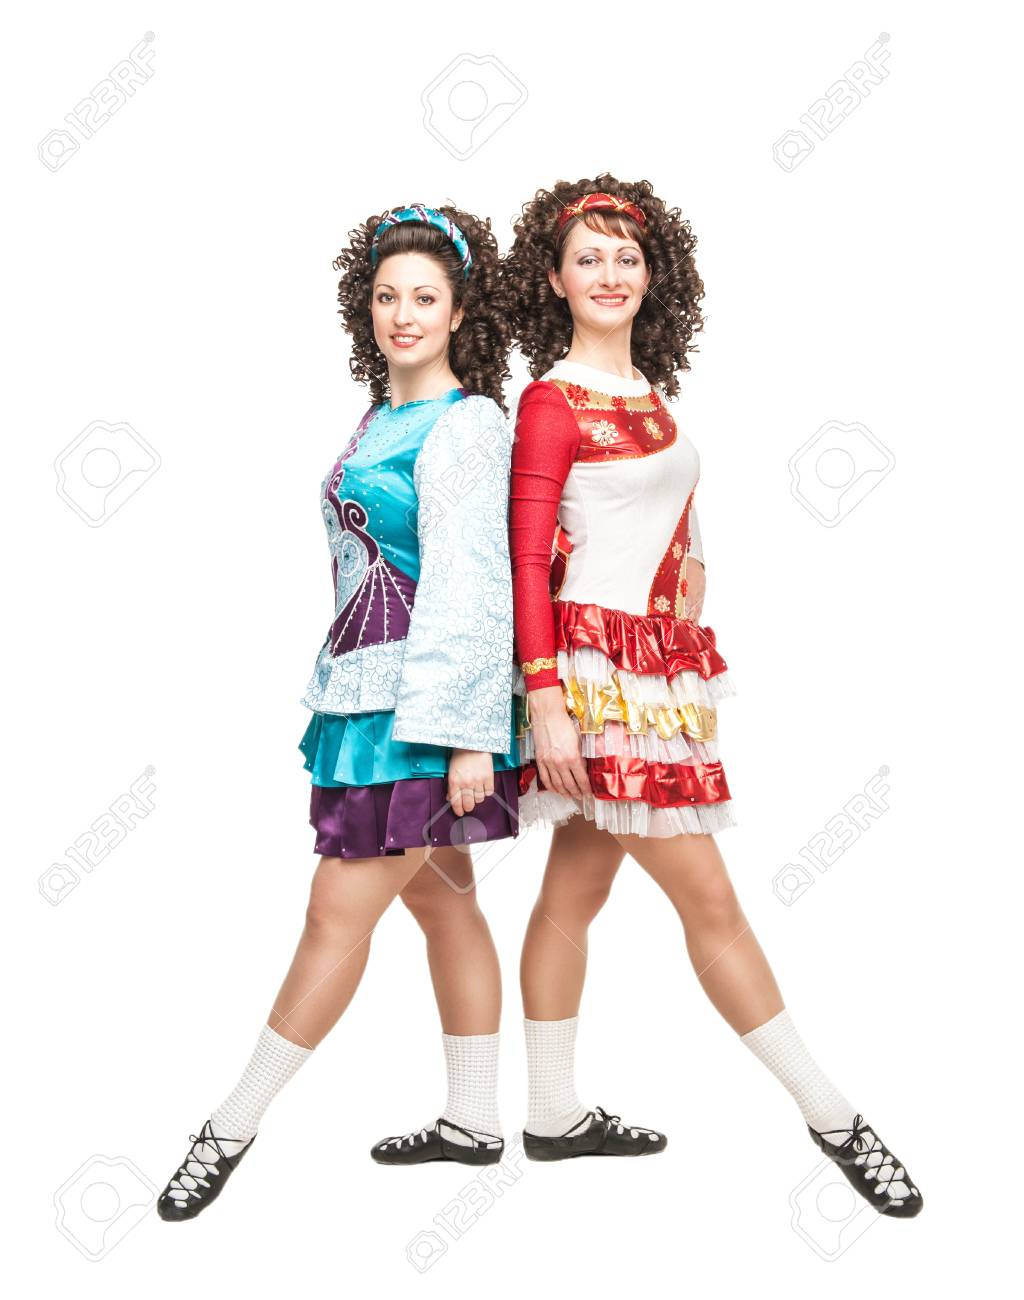 Two Young Women In Irish Dance Dresses Posing Isolated Stock Photo ... cd135496e